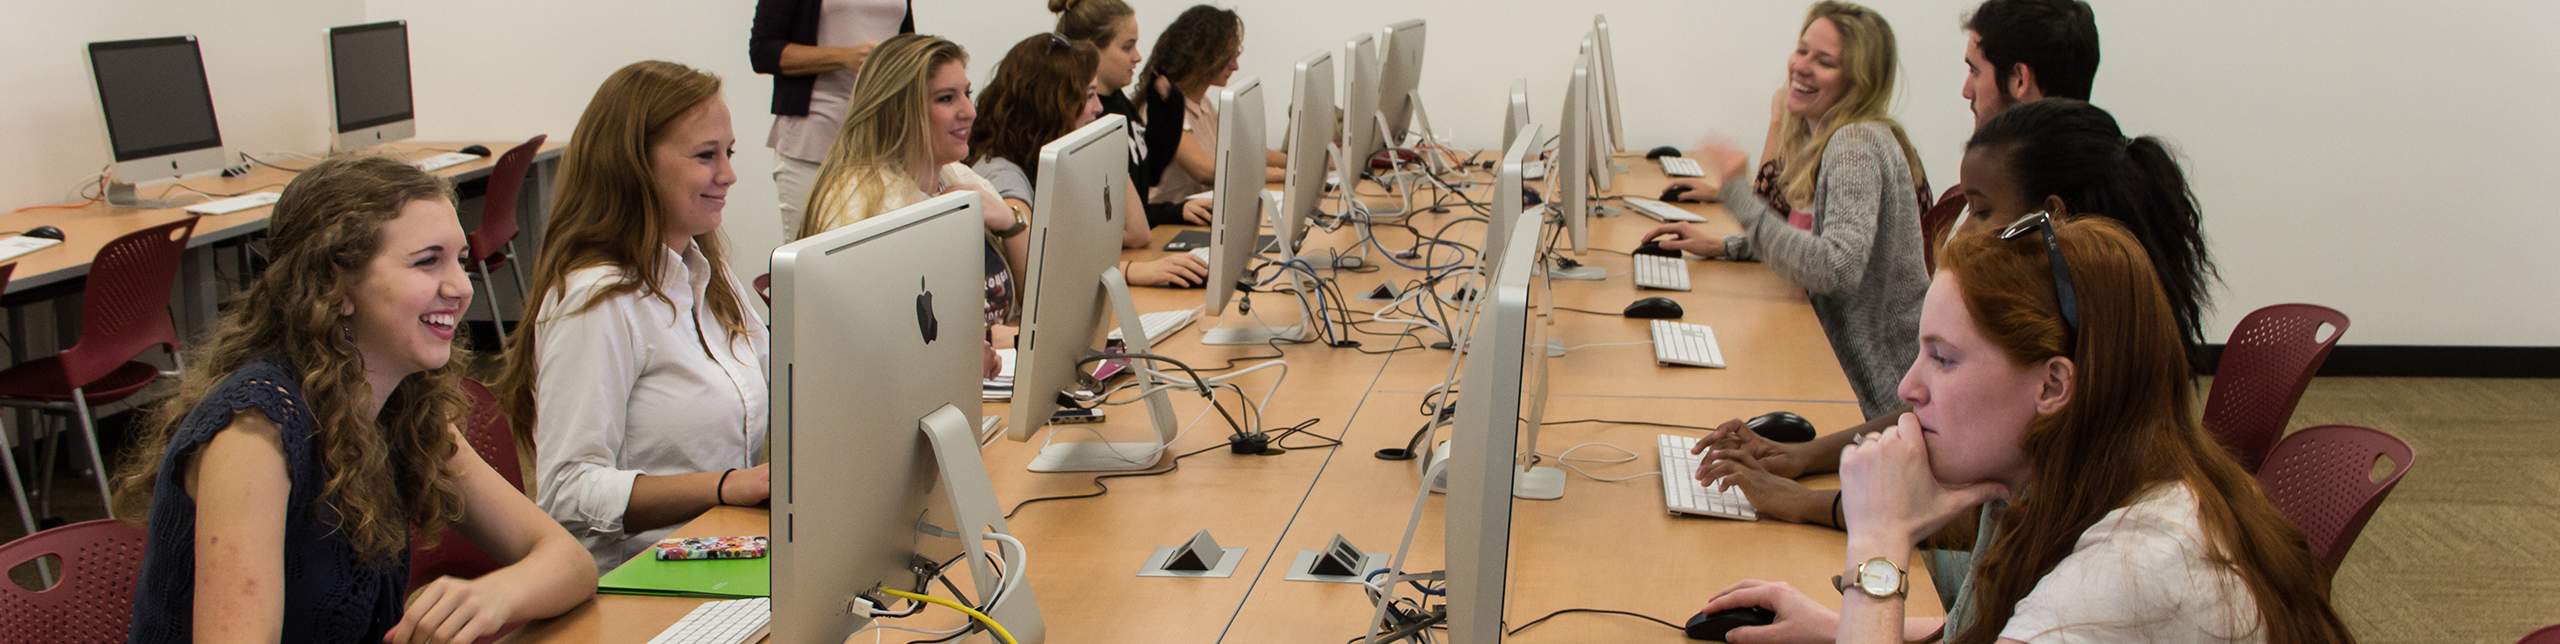 students designing art on computers